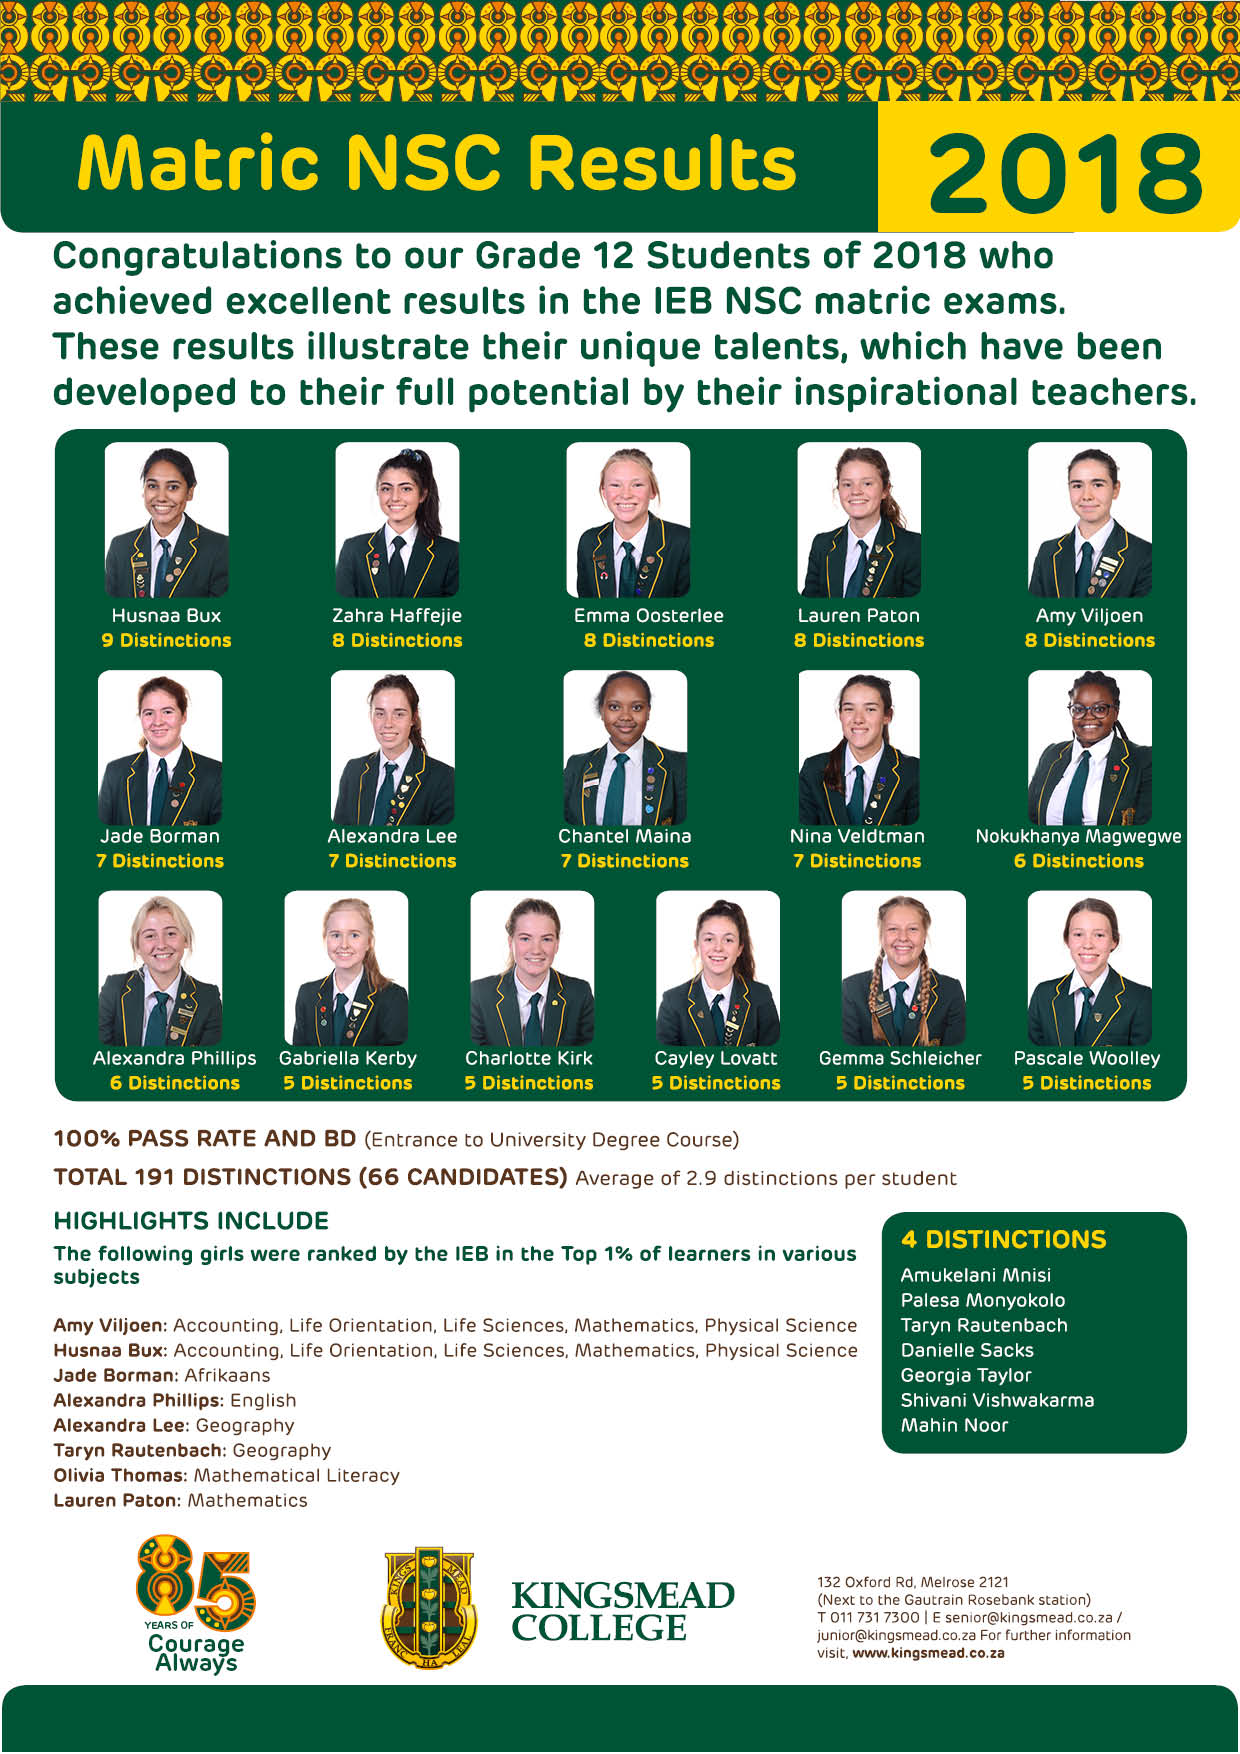 A4 Matric Results JPEG 1 Kingsmead College